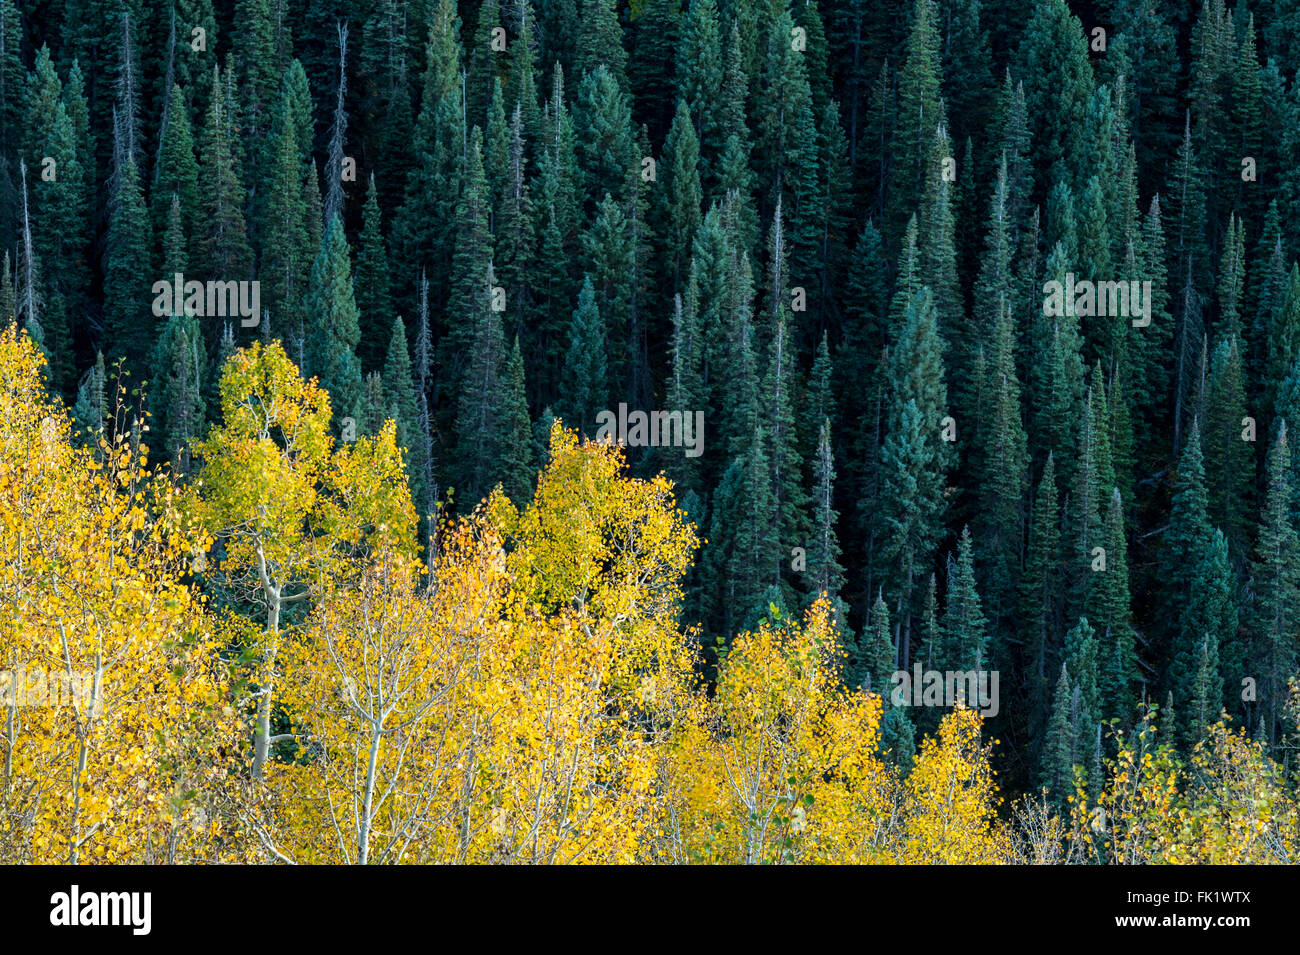 Fall colors contrasting against a green pine forest. - Stock Image